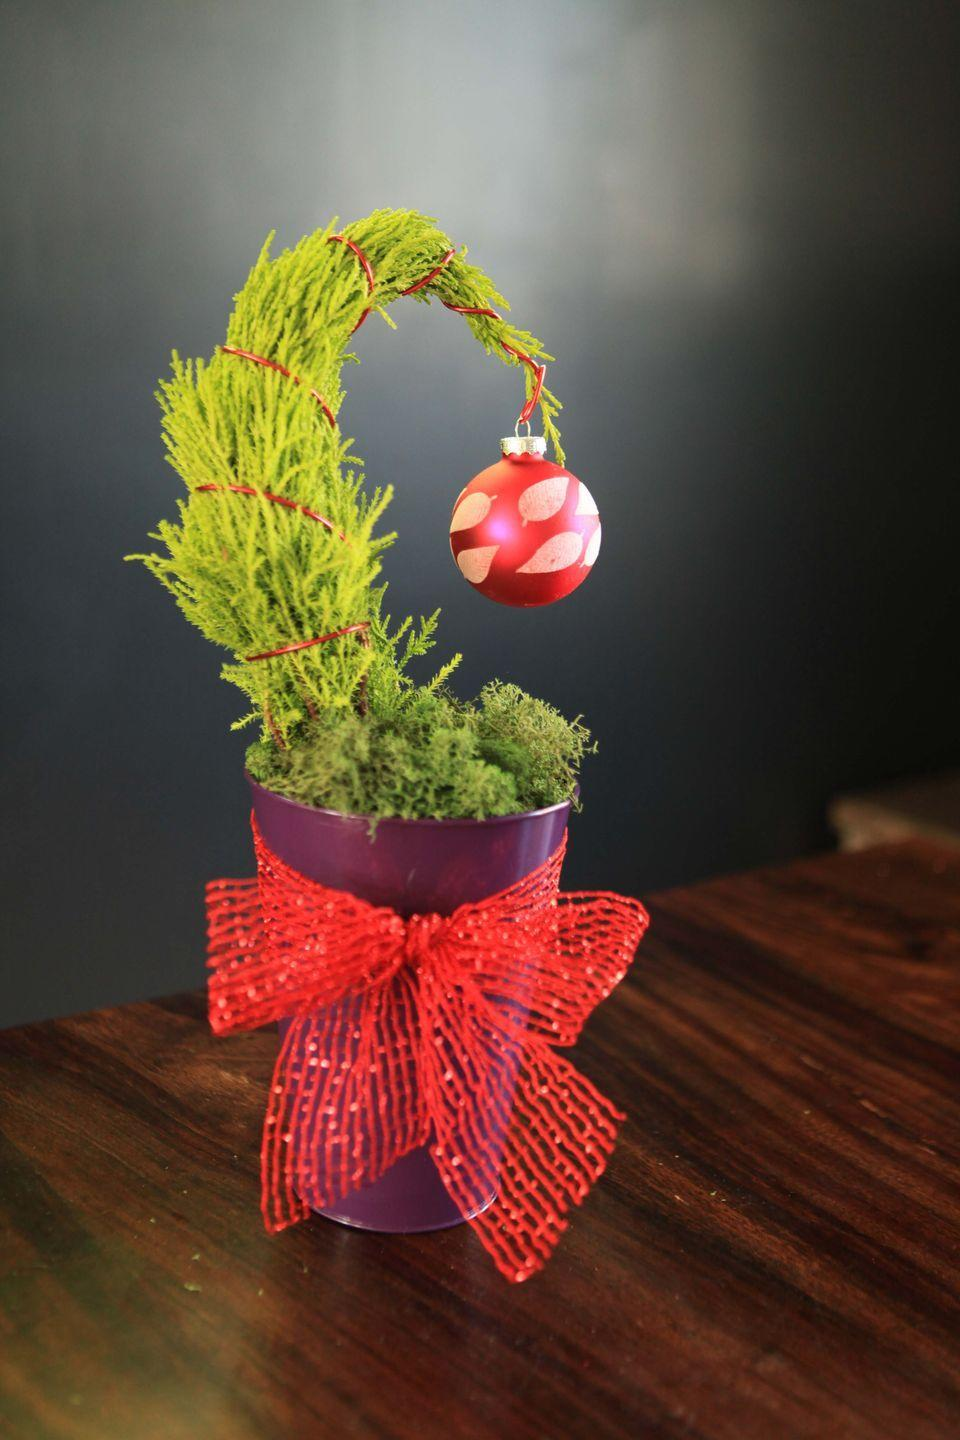 "<p>Stephanie Rose of Garden Therapy transforms a mini lemon cypress into a quirky Grinch-inspired tree. You don't have to have a green hand—a little green thumb will do! </p><p><strong>Get the tutorial at <a href=""https://gardentherapy.ca/table-top-grinch-tree/"" rel=""nofollow noopener"" target=""_blank"" data-ylk=""slk:Garden Therapy"" class=""link rapid-noclick-resp"">Garden Therapy</a>.</strong></p><p><strong><a class=""link rapid-noclick-resp"" href=""https://www.amazon.com/Metallic-Poly-Deco-Ribbon-Yards/dp/B00PKRBHPA/ref=sr_1_1?dchild=1&keywords=mesh+wired+ribbon+red&qid=1603062382&sr=8-1&tag=syn-yahoo-20&ascsubtag=%5Bartid%7C10050.g.28982778%5Bsrc%7Cyahoo-us"" rel=""nofollow noopener"" target=""_blank"" data-ylk=""slk:SHOP MESH RIBBON"">SHOP MESH RIBBON</a><br></strong></p>"